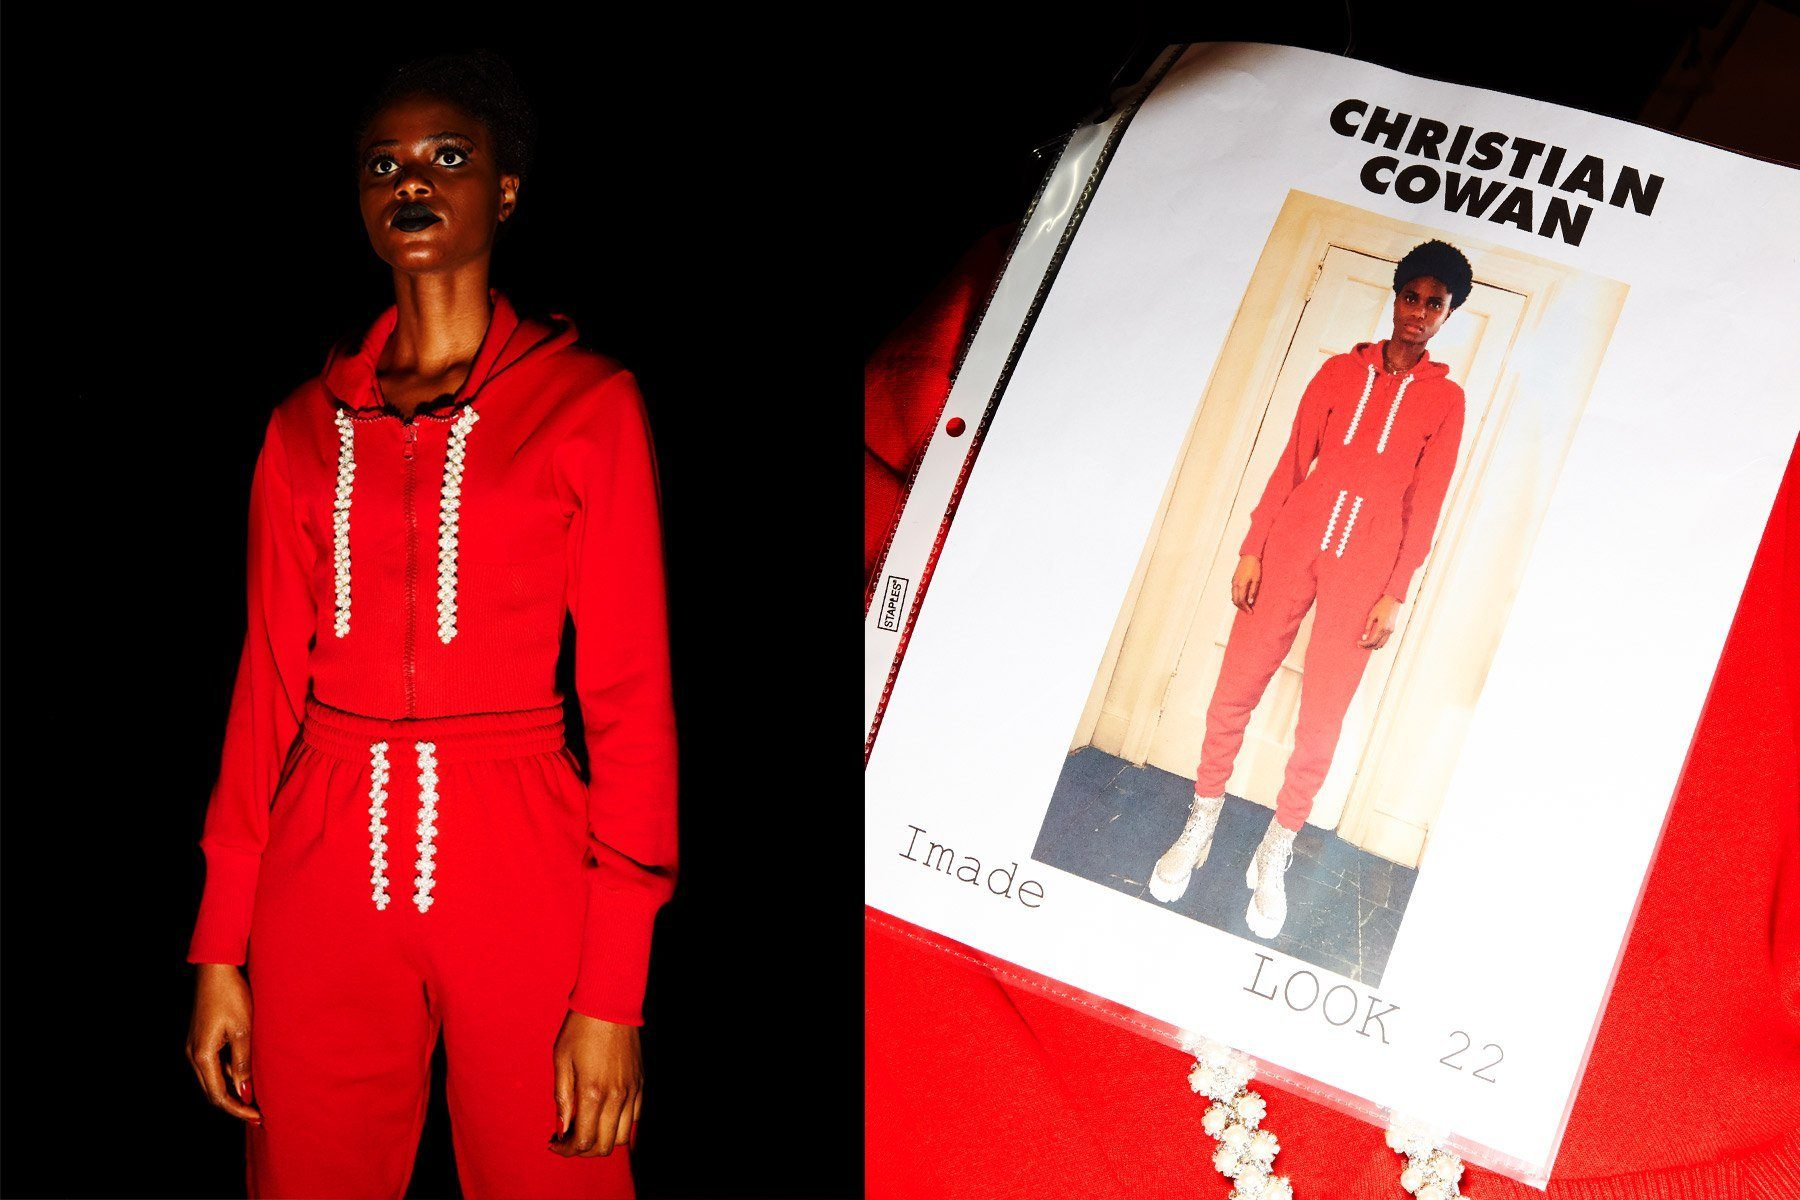 Model Imade Ogebewi snapped backstage at Christian Cowan for Spring/Summer 2019. Photography by Alexander Thompson for Ponyboy magazine.